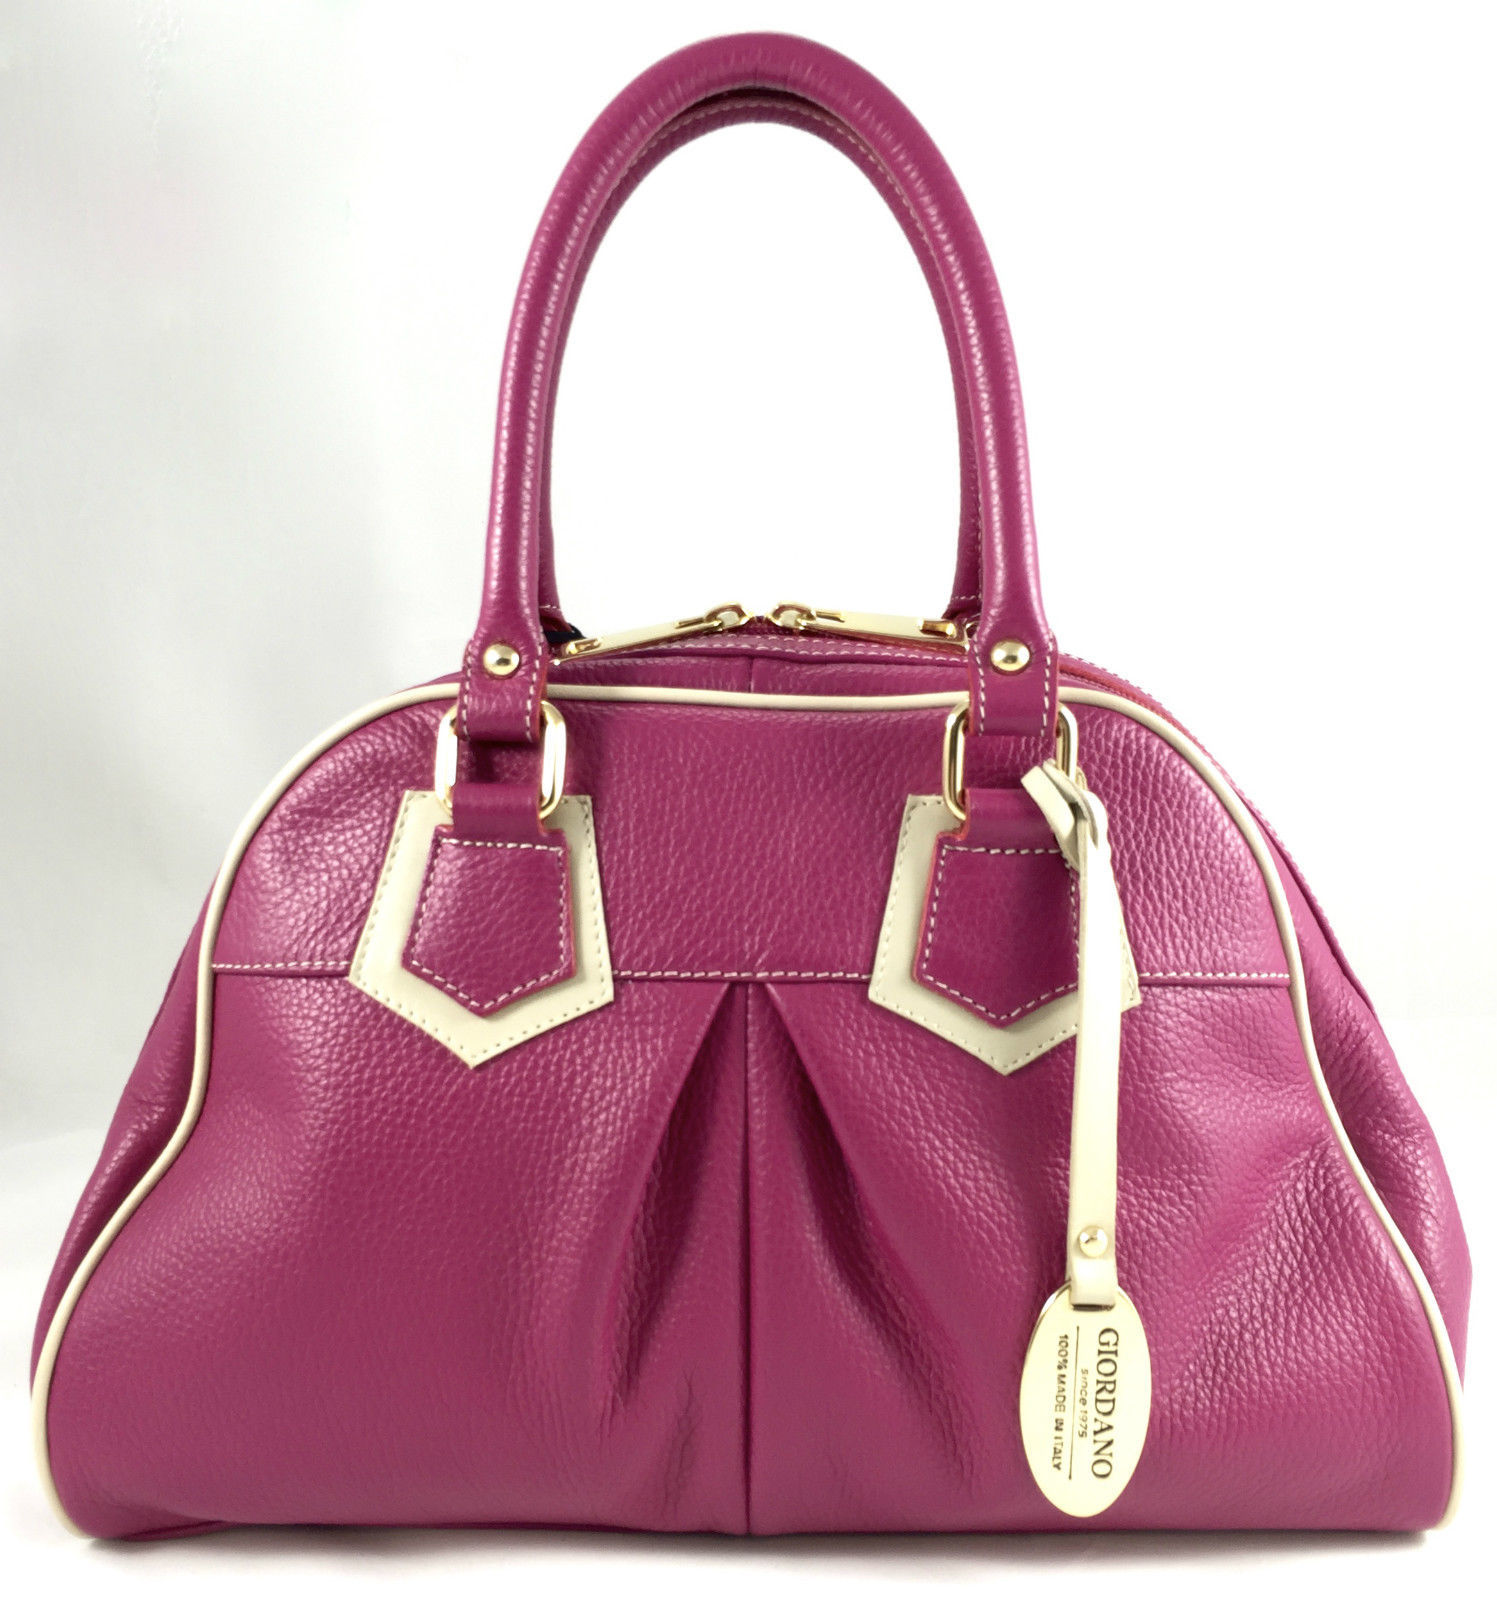 GIORDANO Italian Made Pink Pebbled Italian Leather Satchel in Fuscia Pink Cream